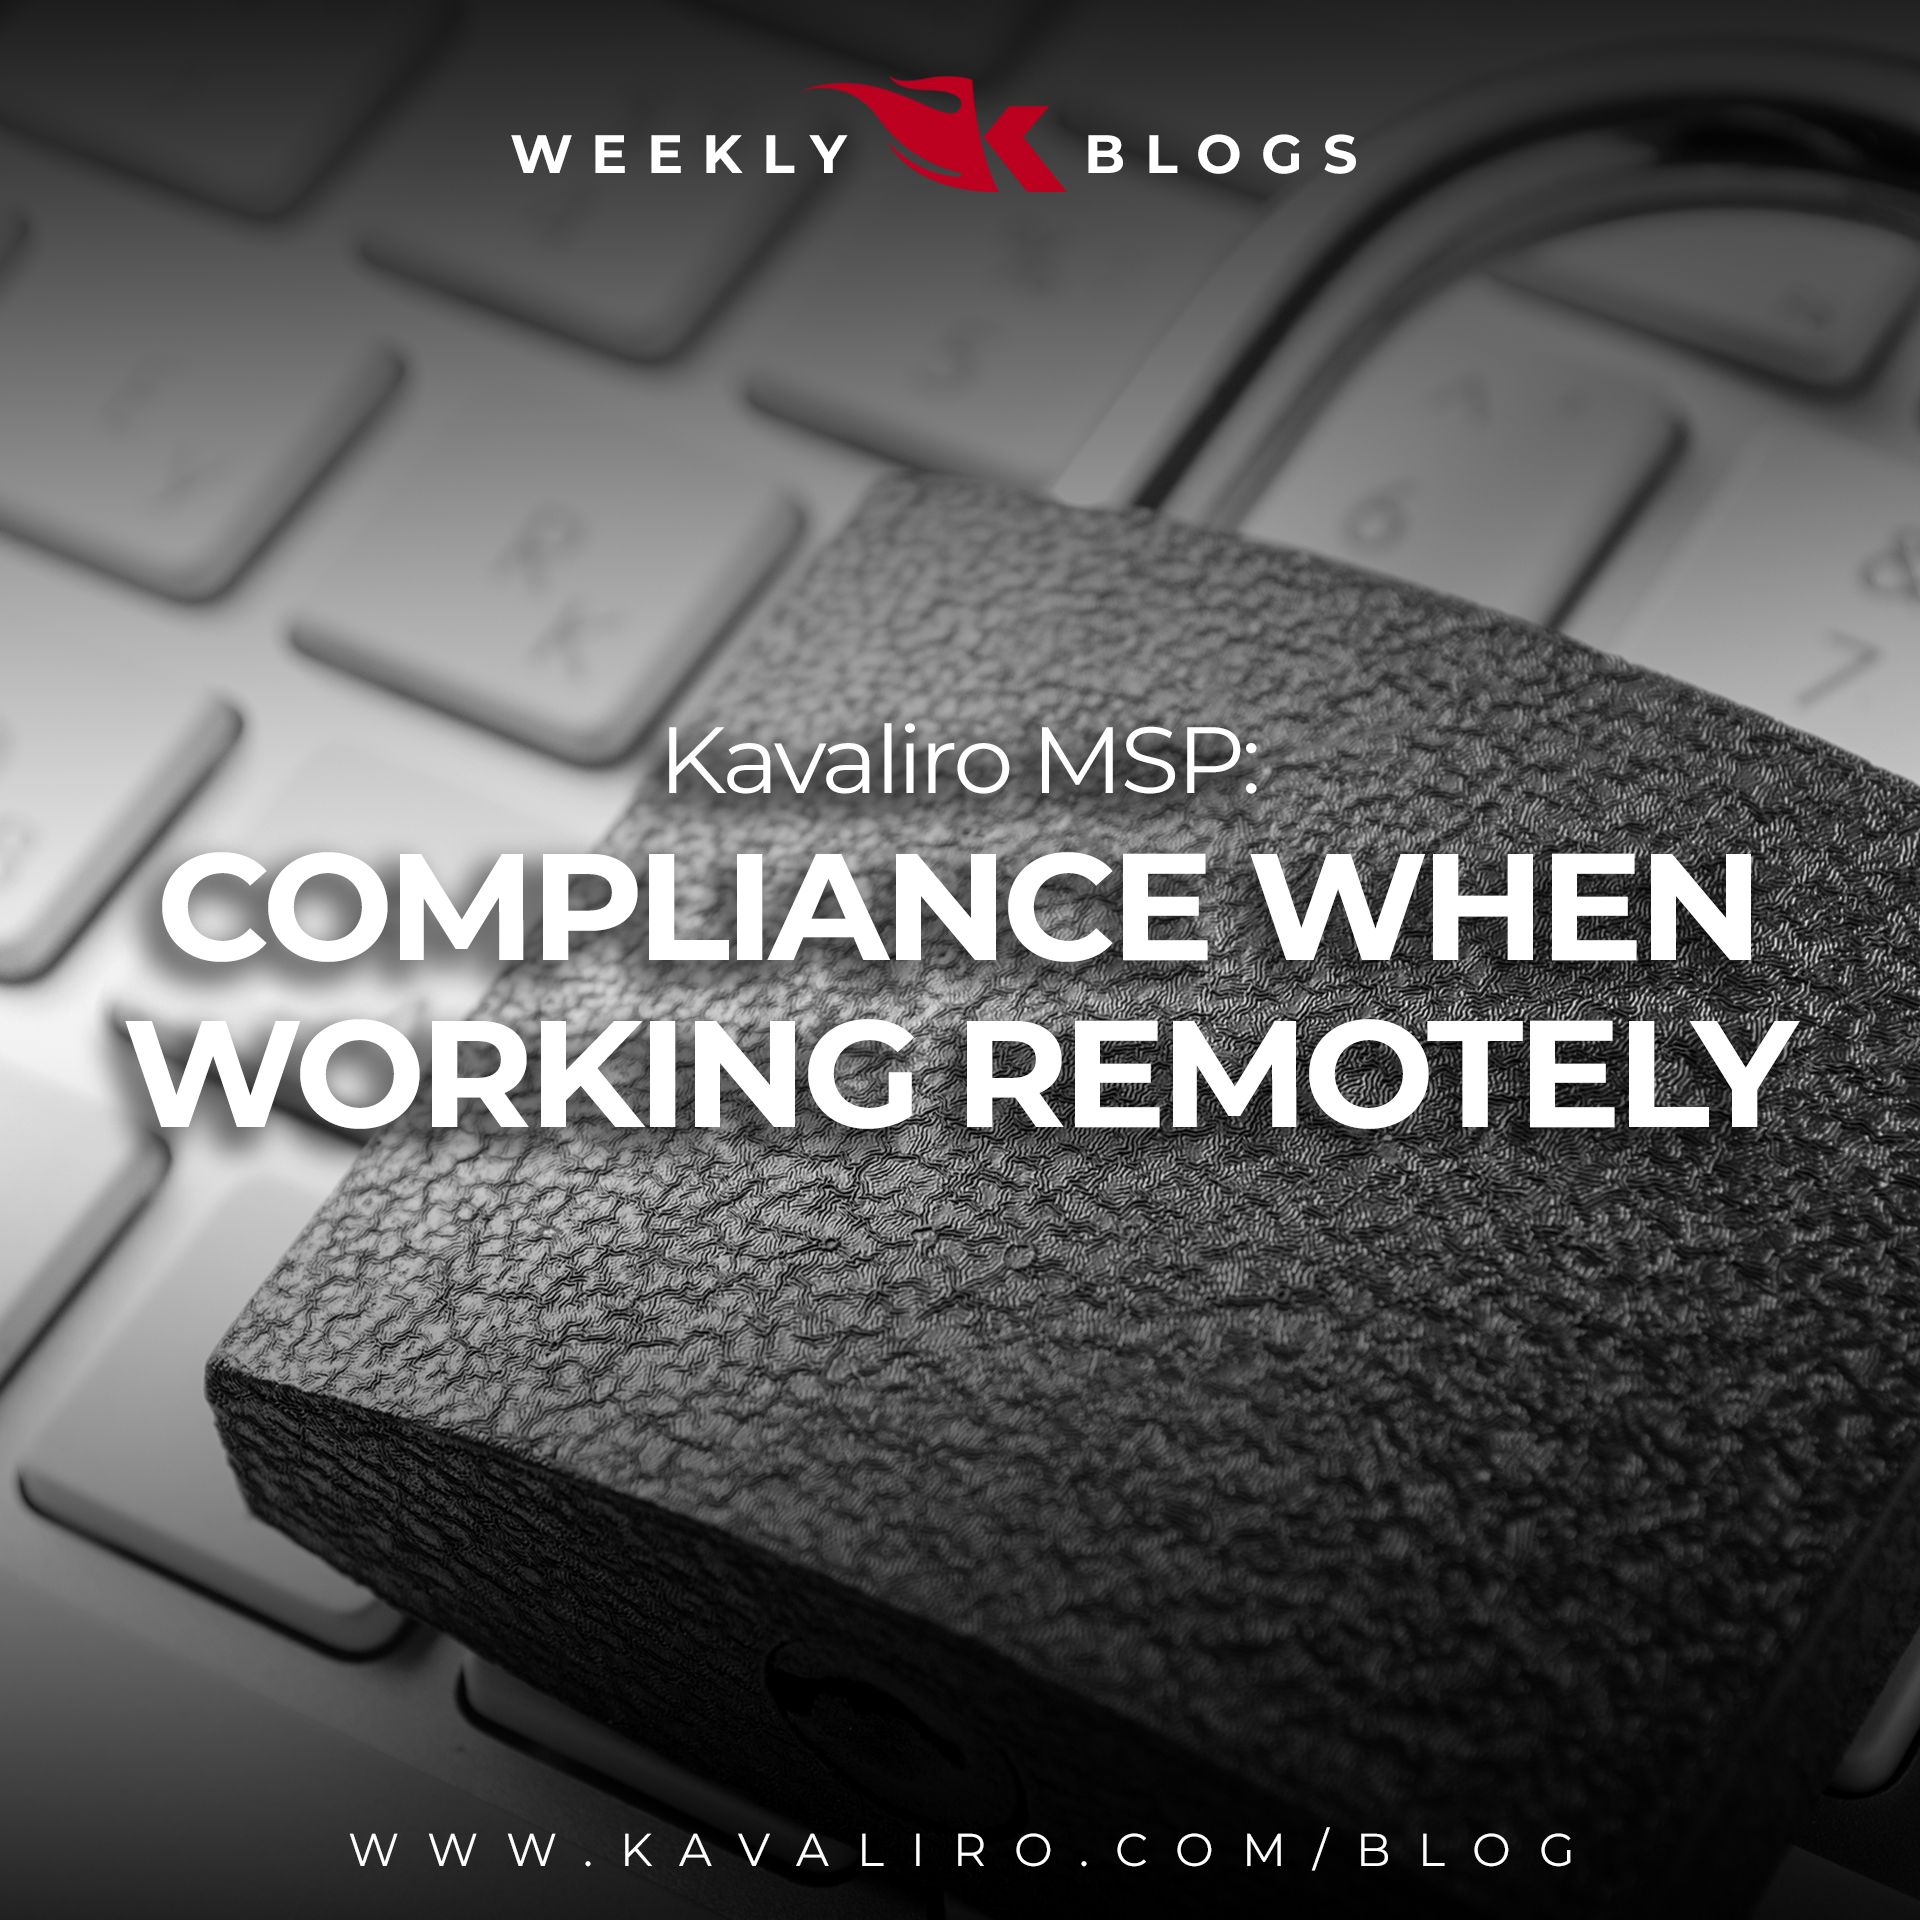 Compliance when working remotely